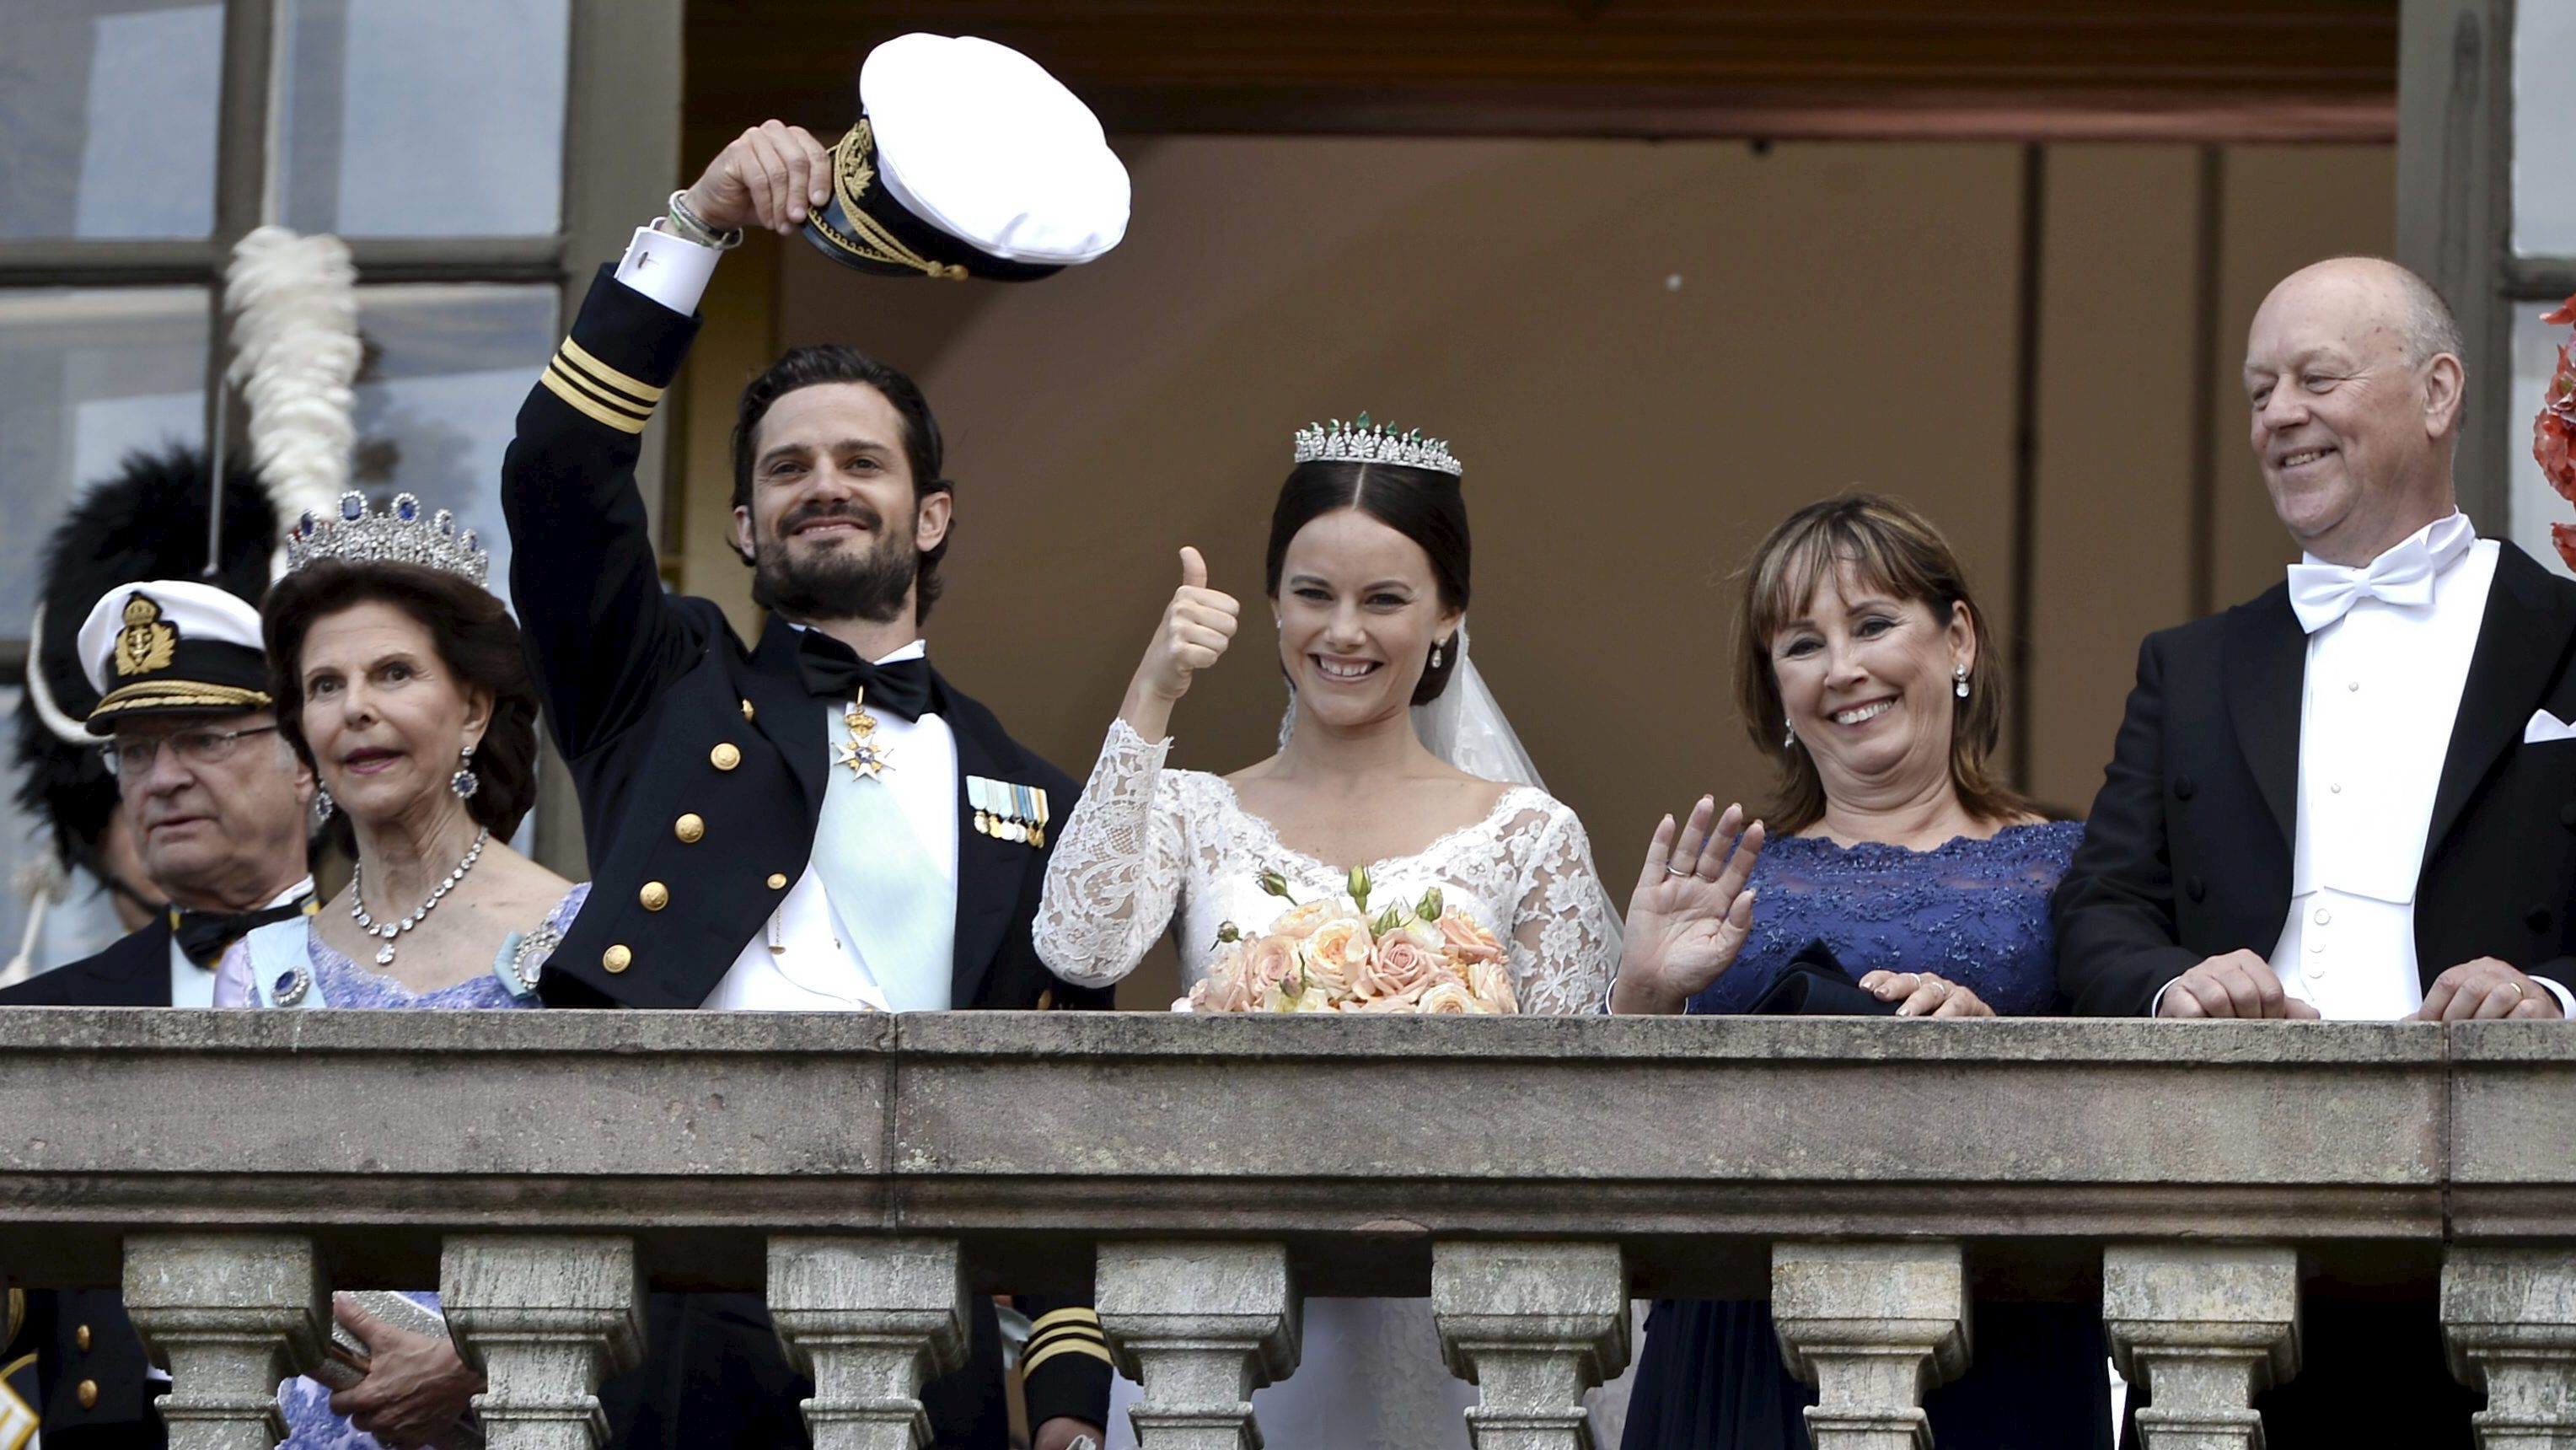 (L-R) Sweden's King Carl Gustaf, Queen Silvia, Prince Carl Philip, Sofia Hellqvist and Marie and Erik Hellqvist wave after their royal wedding in the Royal Chapel in Stockholm, Sweden, June 13, 2015. REUTERS/Claudio Bresciani/TT News Agency  ATTENTION EDITORS - THIS IMAGE HAS BEEN SUPPLIED BY A THIRD PARTY. IT IS DISTRIBUTED, EXACTLY AS RECEIVED BY REUTERS, AS A SERVICE TO CLIENTS. SWEDEN OUT. NO COMMERCIAL OR EDITORIAL SALES IN SWEDEN. NO COMMERCIAL SALES.